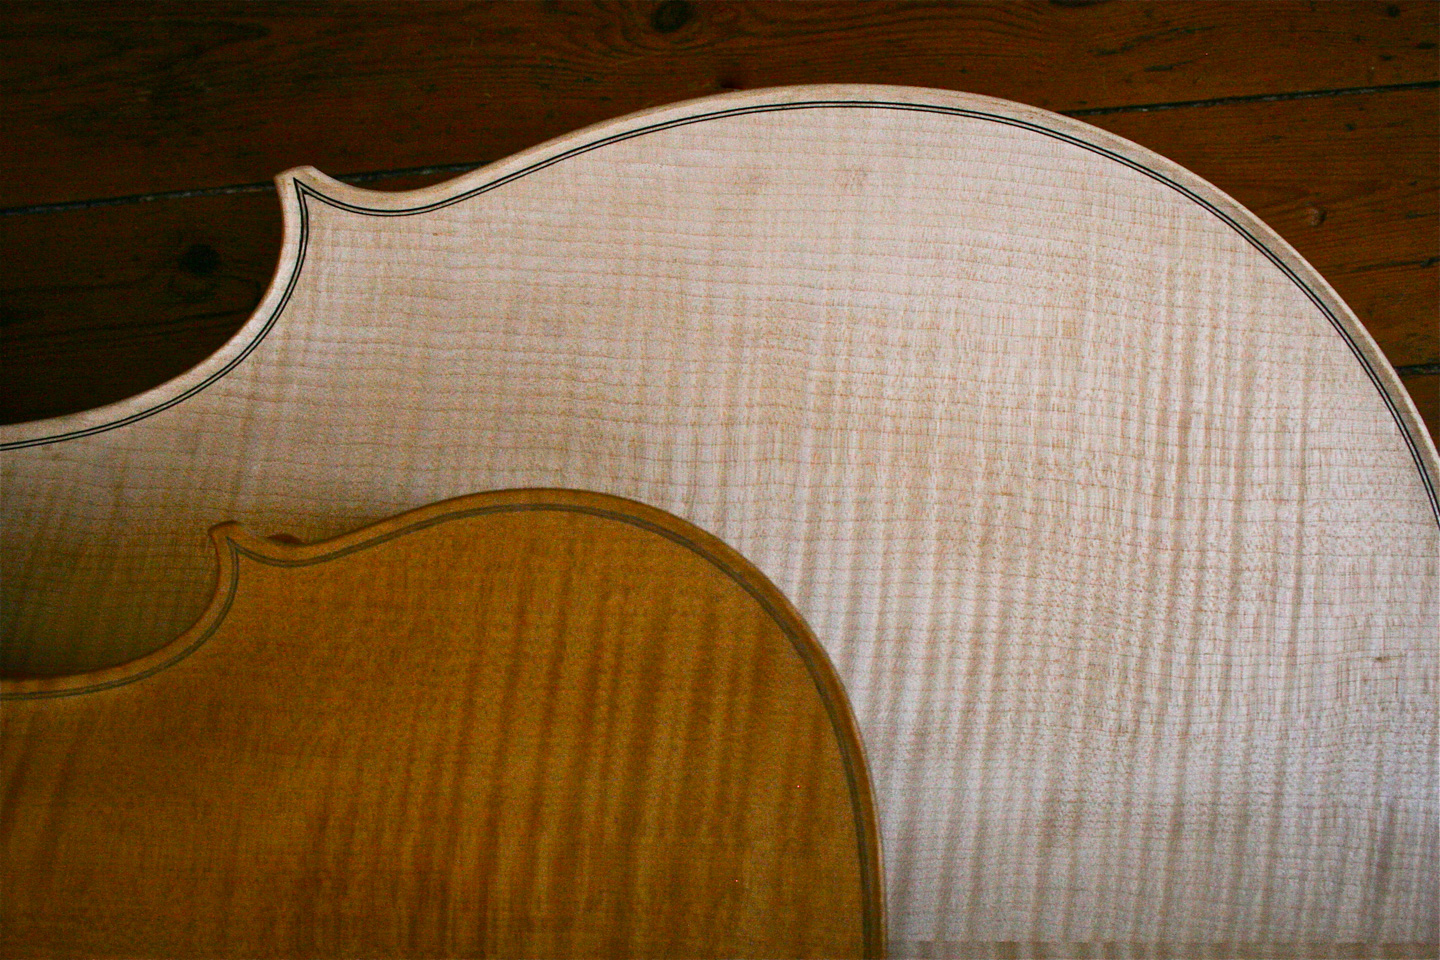 Old wood minerale interior of violin - Solum Refractive Foundation That Maintain The Woods Wet Mirror